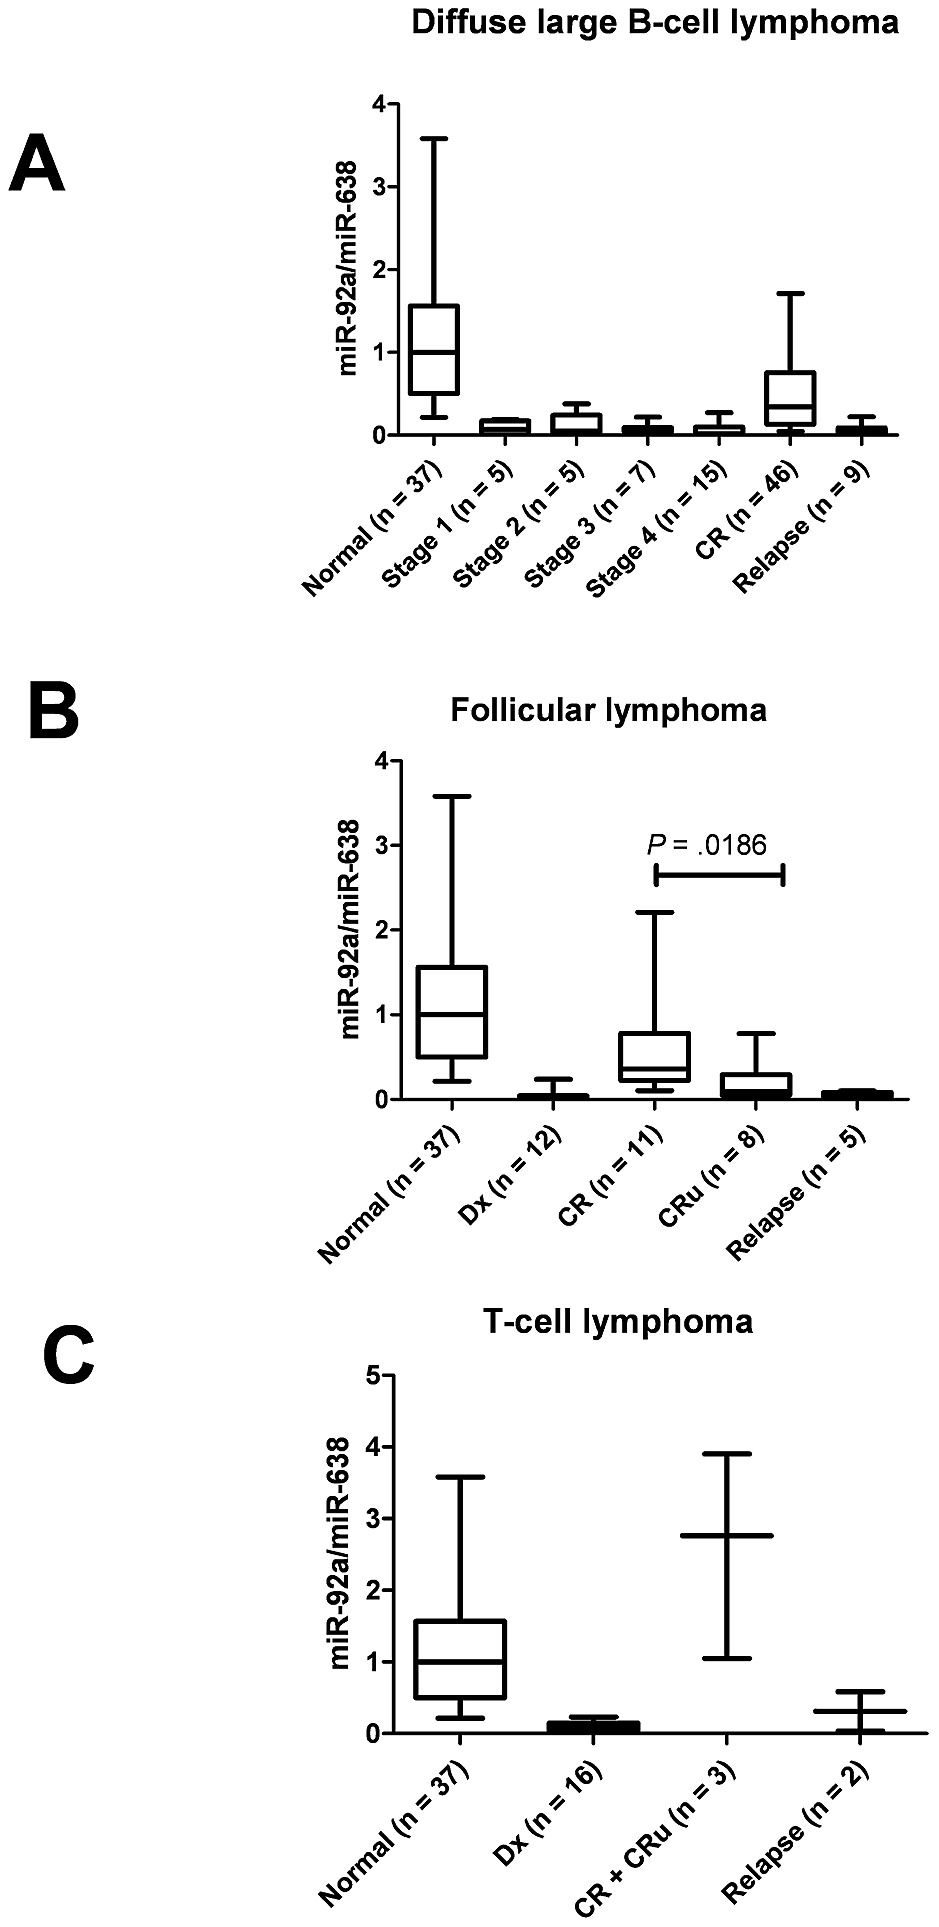 medium resolution of plasma mir 92a value mir 92a mir 638 in patients with non hodgkin s lymphoma at various stages